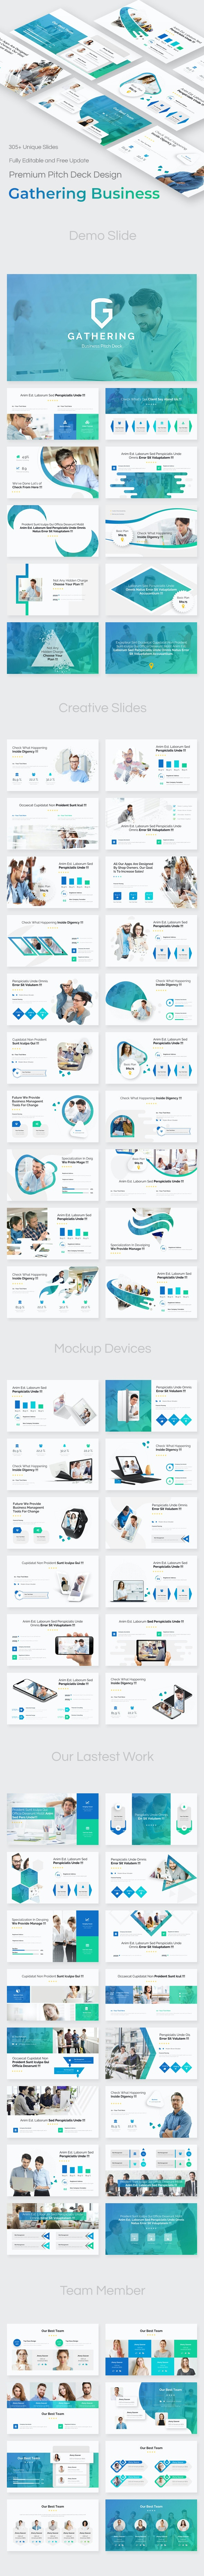 Gathering Business Pitch Deck Powerpoint Template - Business PowerPoint Templates